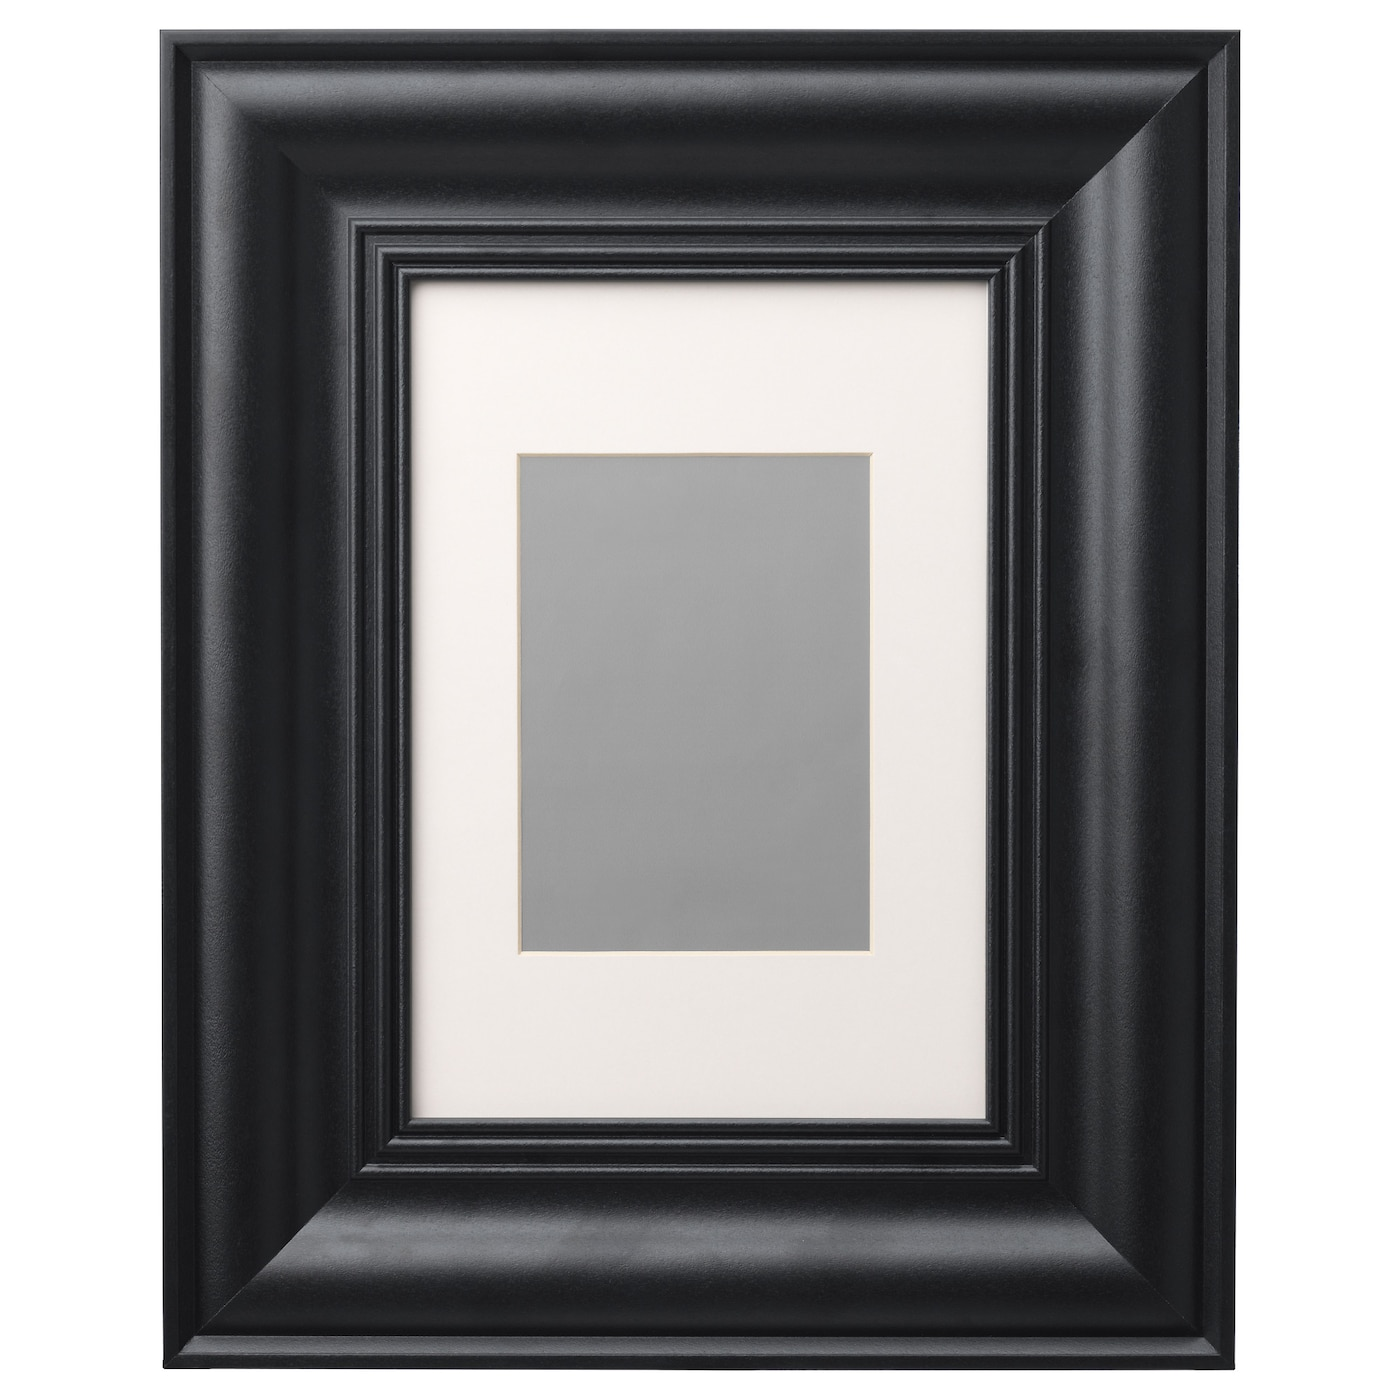 IKEA SKATTEBY frame Available in different sizes. Fits A4 size pictures if used without the mount.